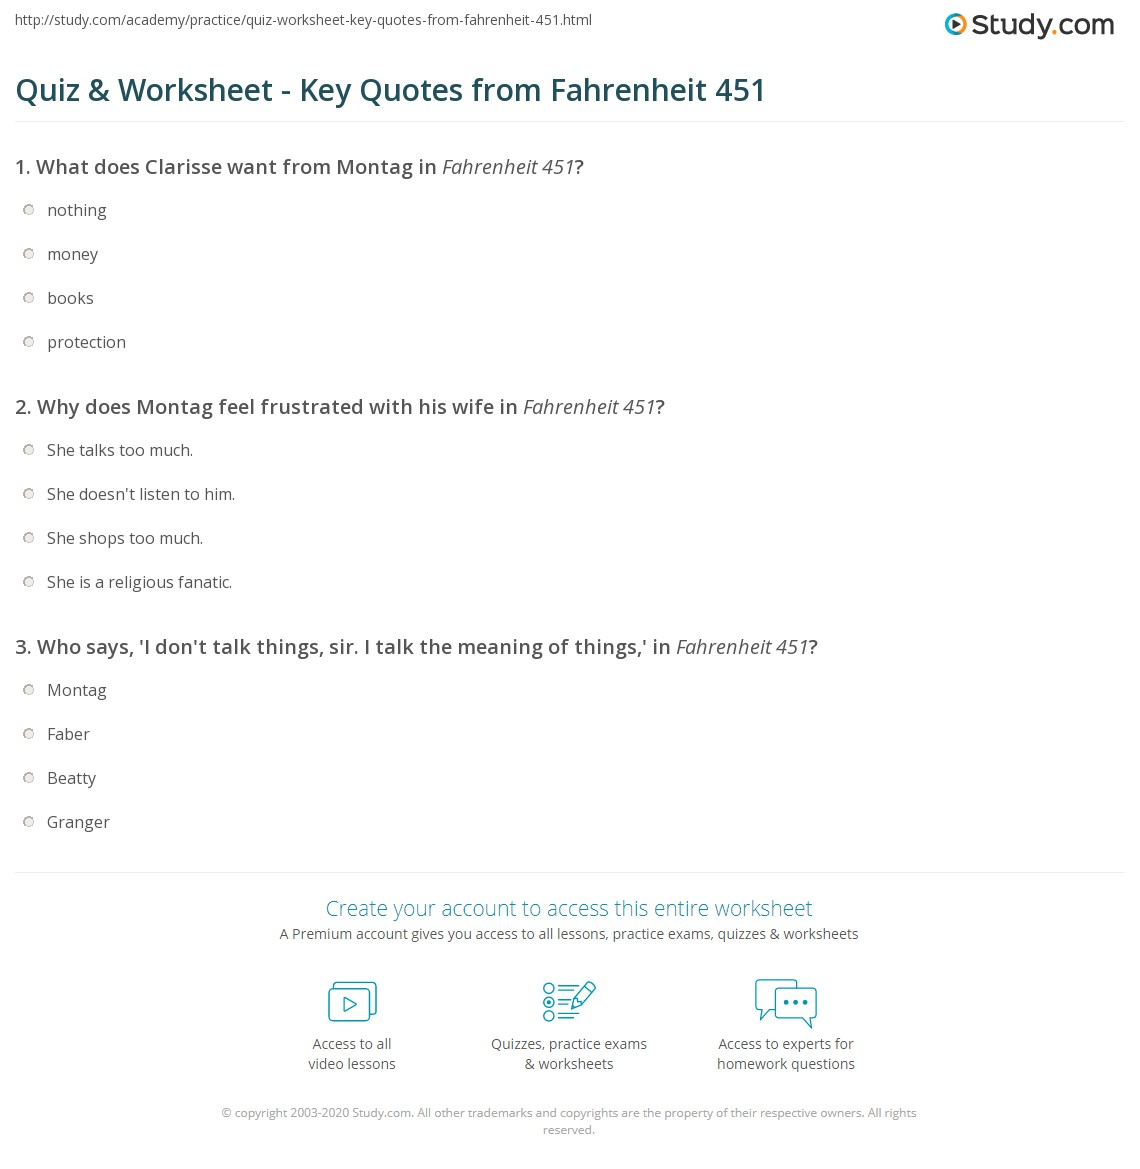 Fahrenheit 451 Quotes About Books Quiz & Worksheet  Key Quotes From Fahrenheit 451  Study